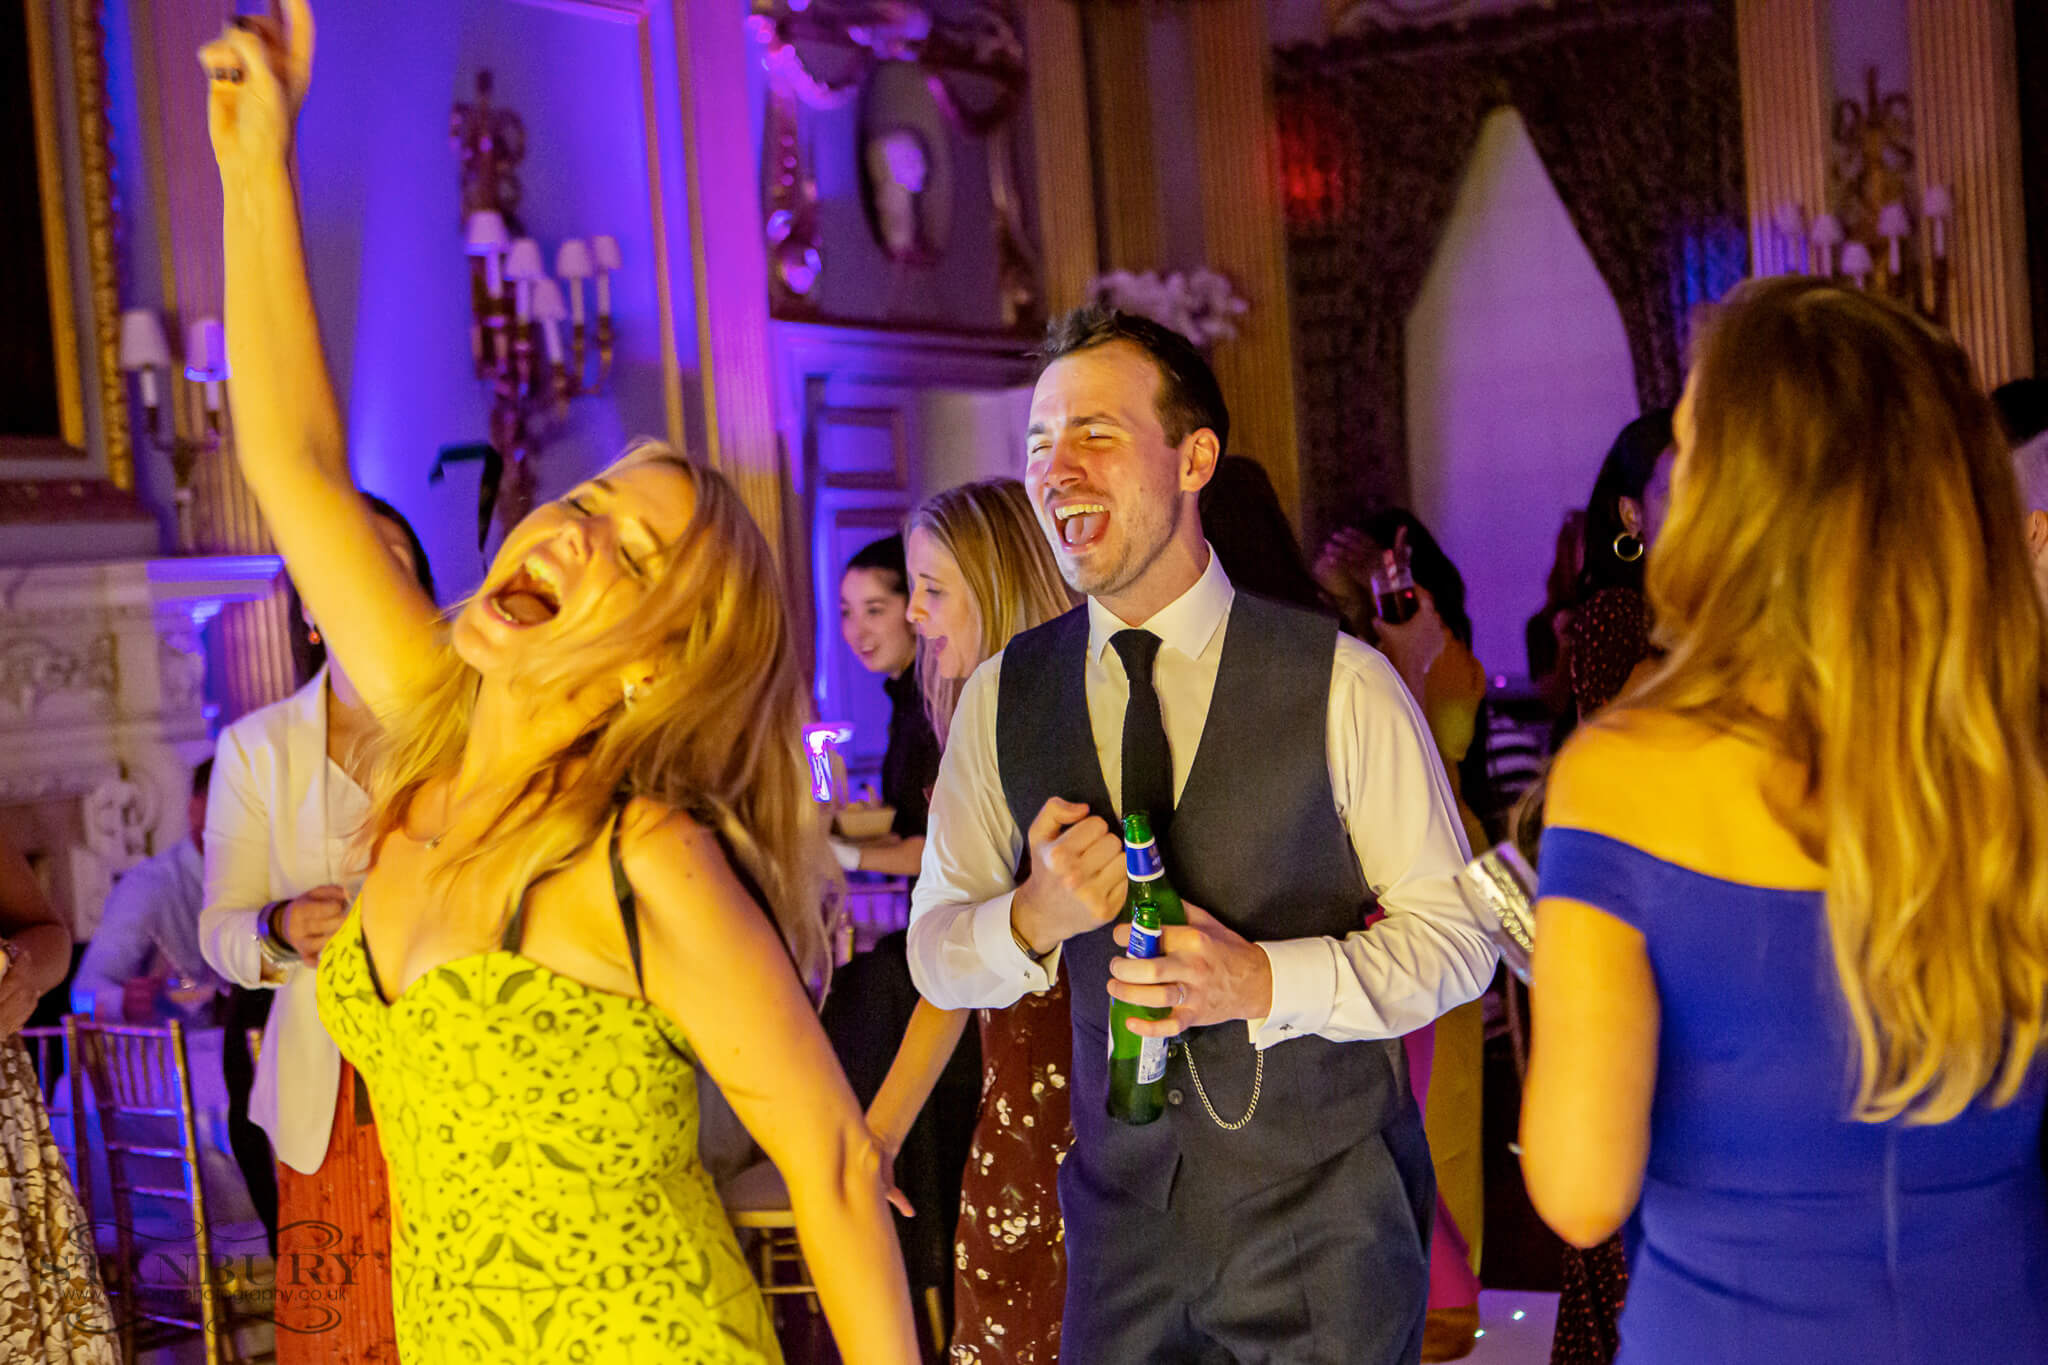 knowsley-hall-wedding-stanbury-photography-040